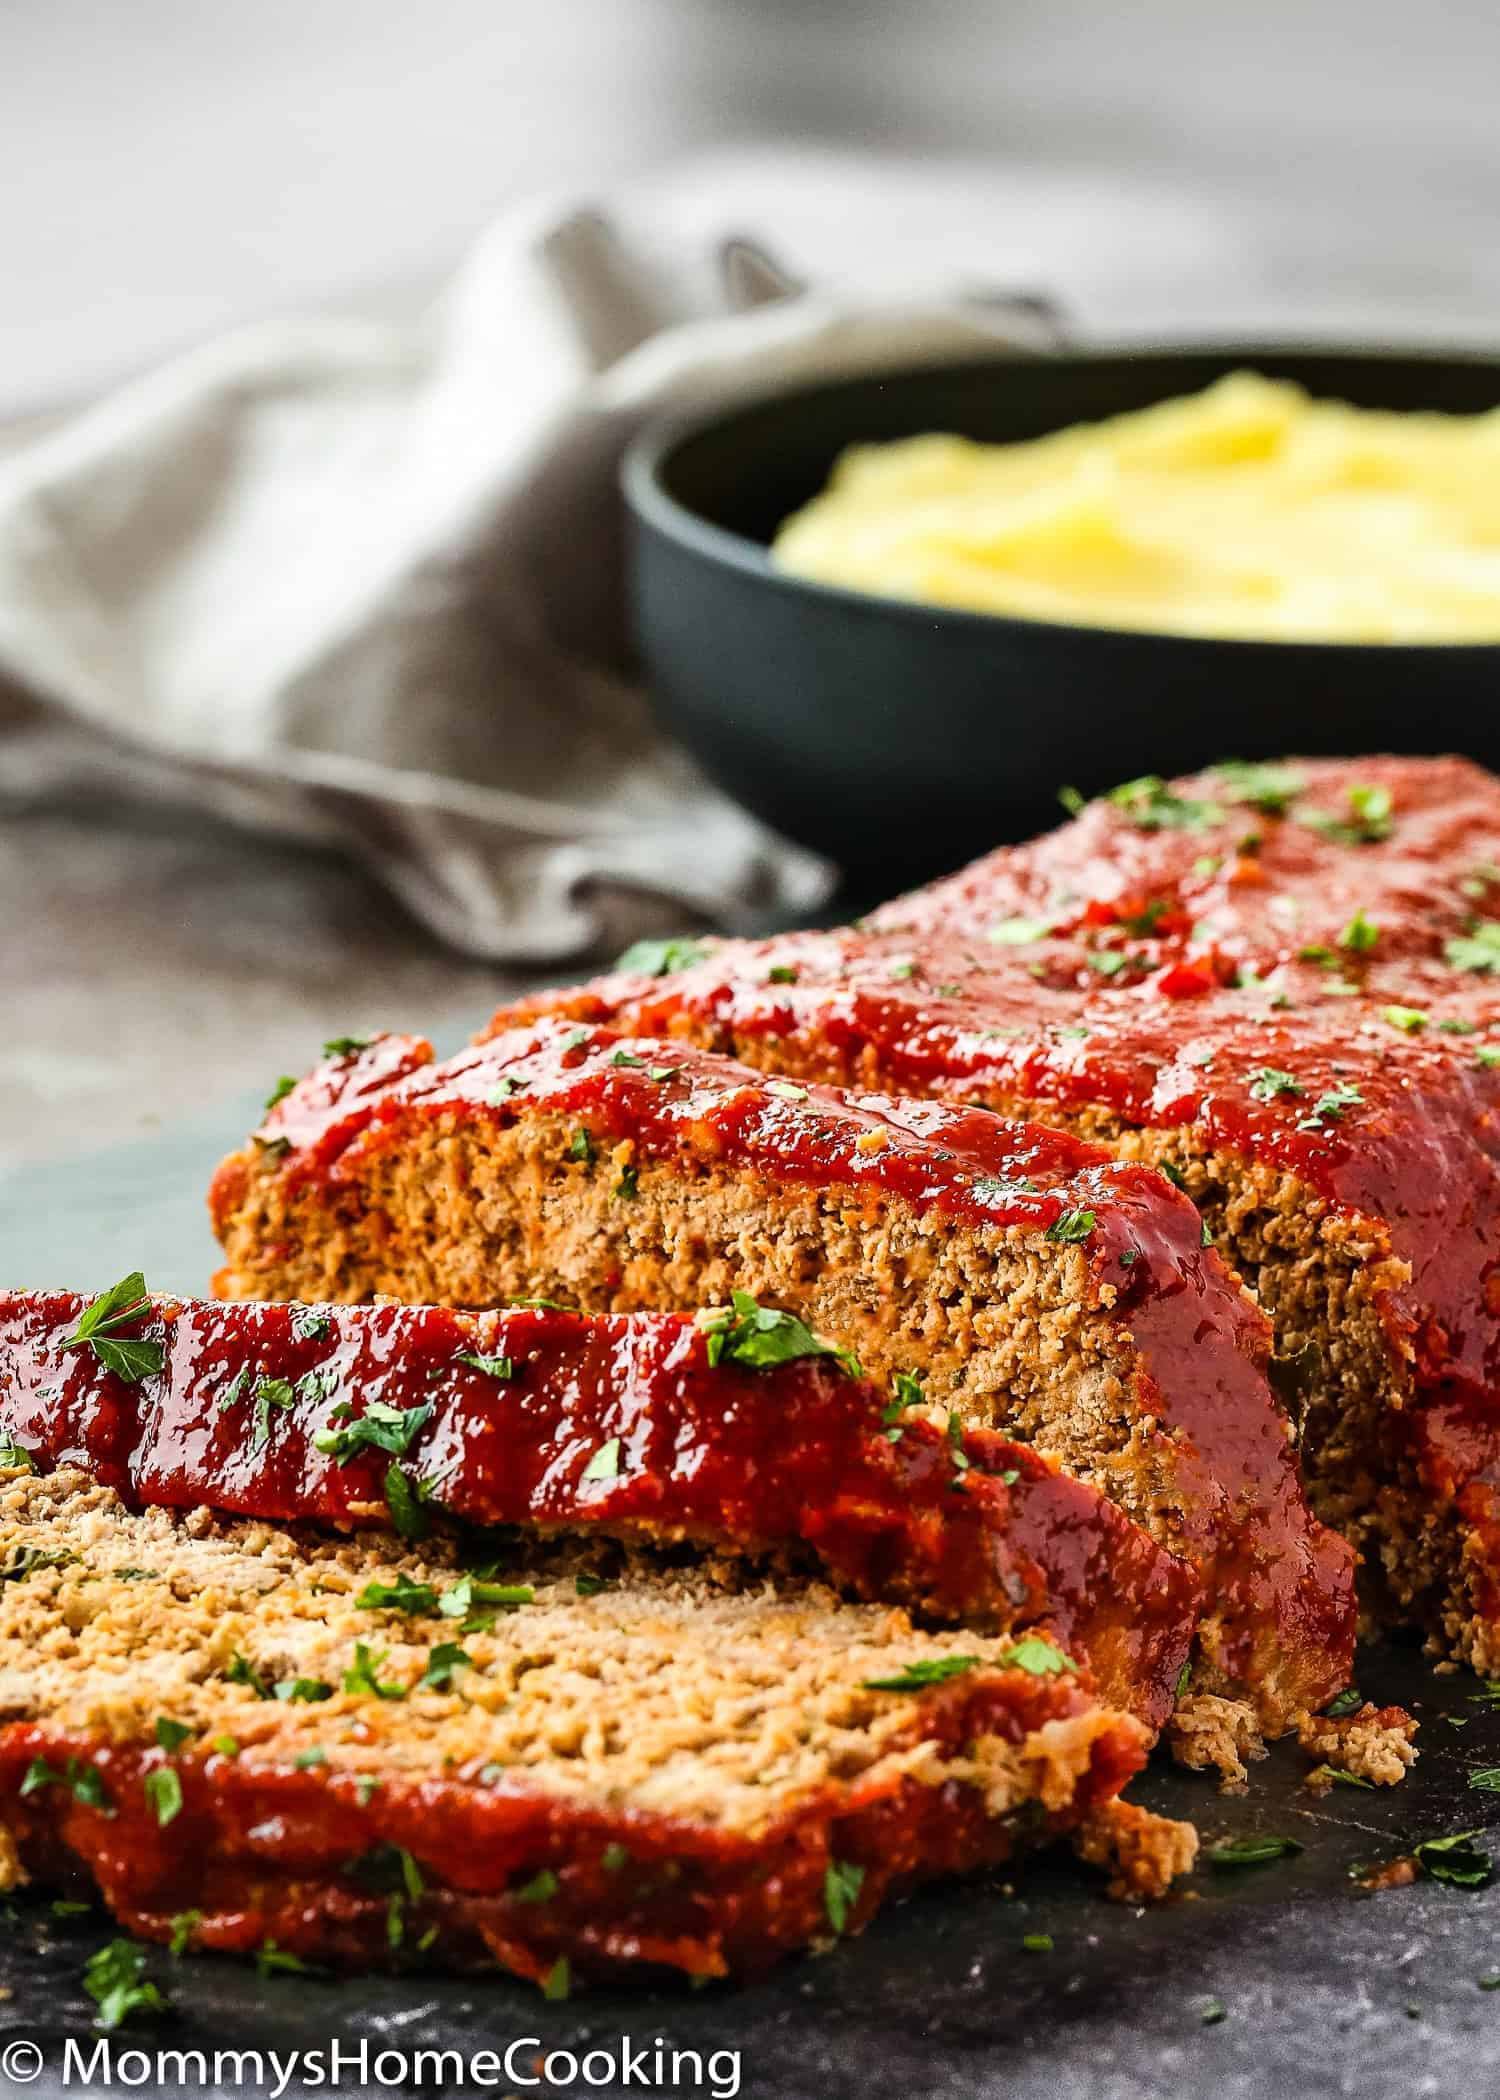 This Easy Eggless Meatloaf is tasty, tender, and juicy, yet holds together well when sliced. Made with simple ingredients, this eggless meatloaf is very easy to make and will satisfy even the pickiest eaters! Make ahead, freezing tips, and many tricks included. https://mommyshomecooking.com